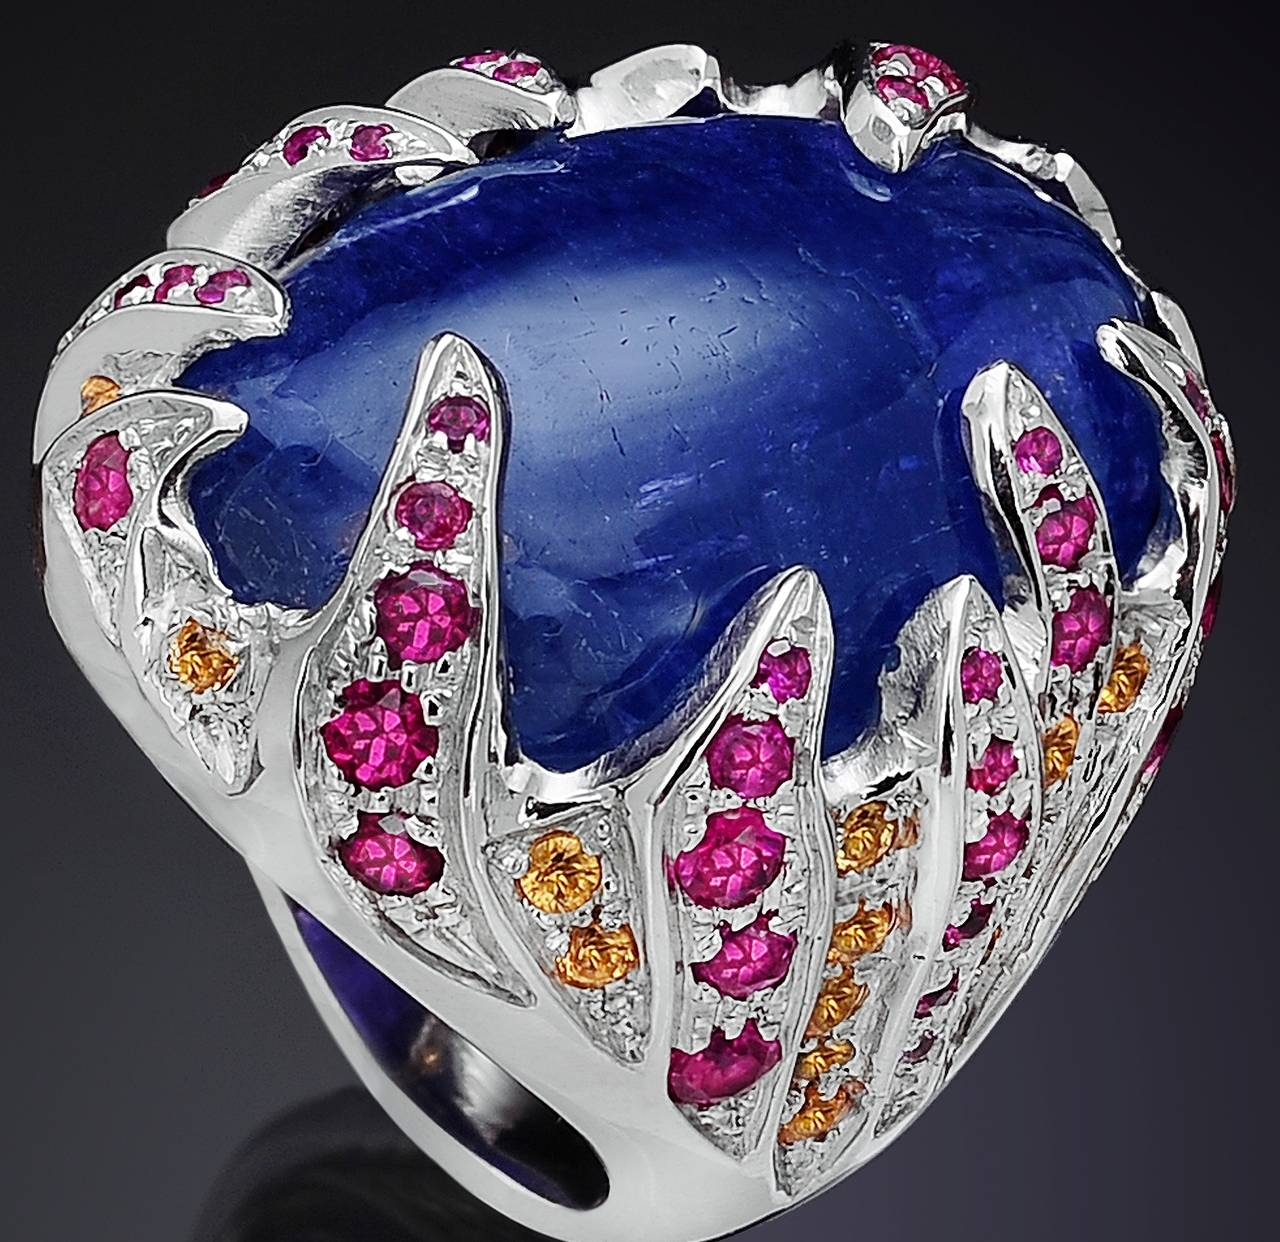 Wonderful cabochon tanzanite gemstone 38 ctw set in 18k white gold with rubies 2.46 ctw and yellow sapphires 0.77 ctw. US finger size 6.5, it can be resized before shipment. It is handcrafted in Italy by Botta Gioielli and it  is stamped with the